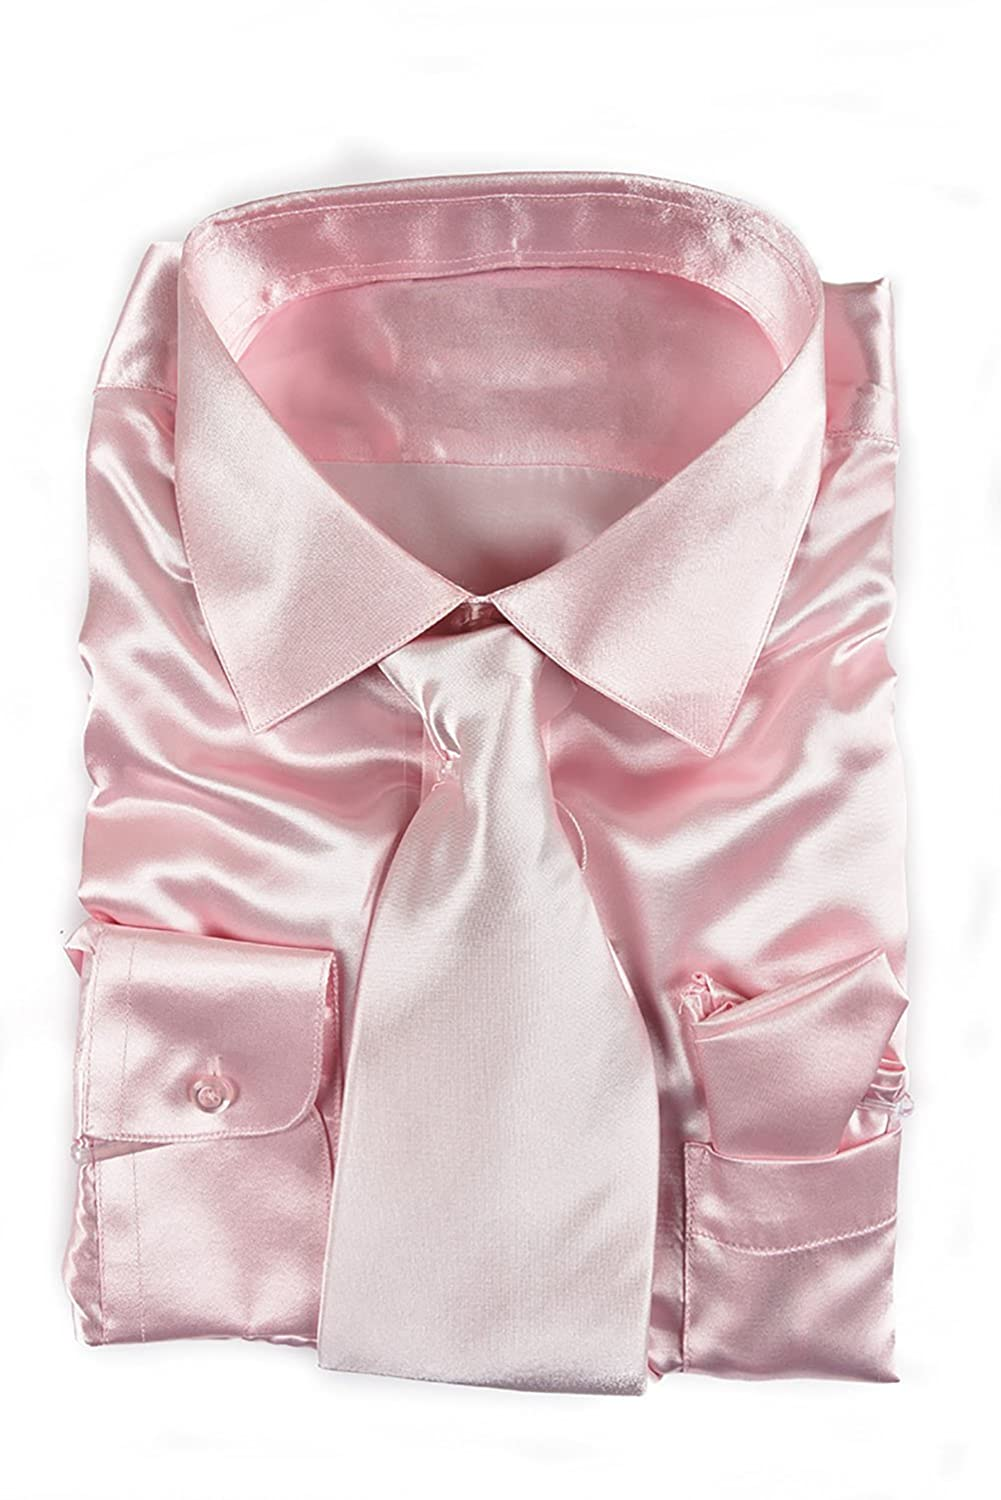 52bf501dc726 Top1: Classy Men's Satin Shiny Light Pink Shirt Set + Matching Tie and Hanky